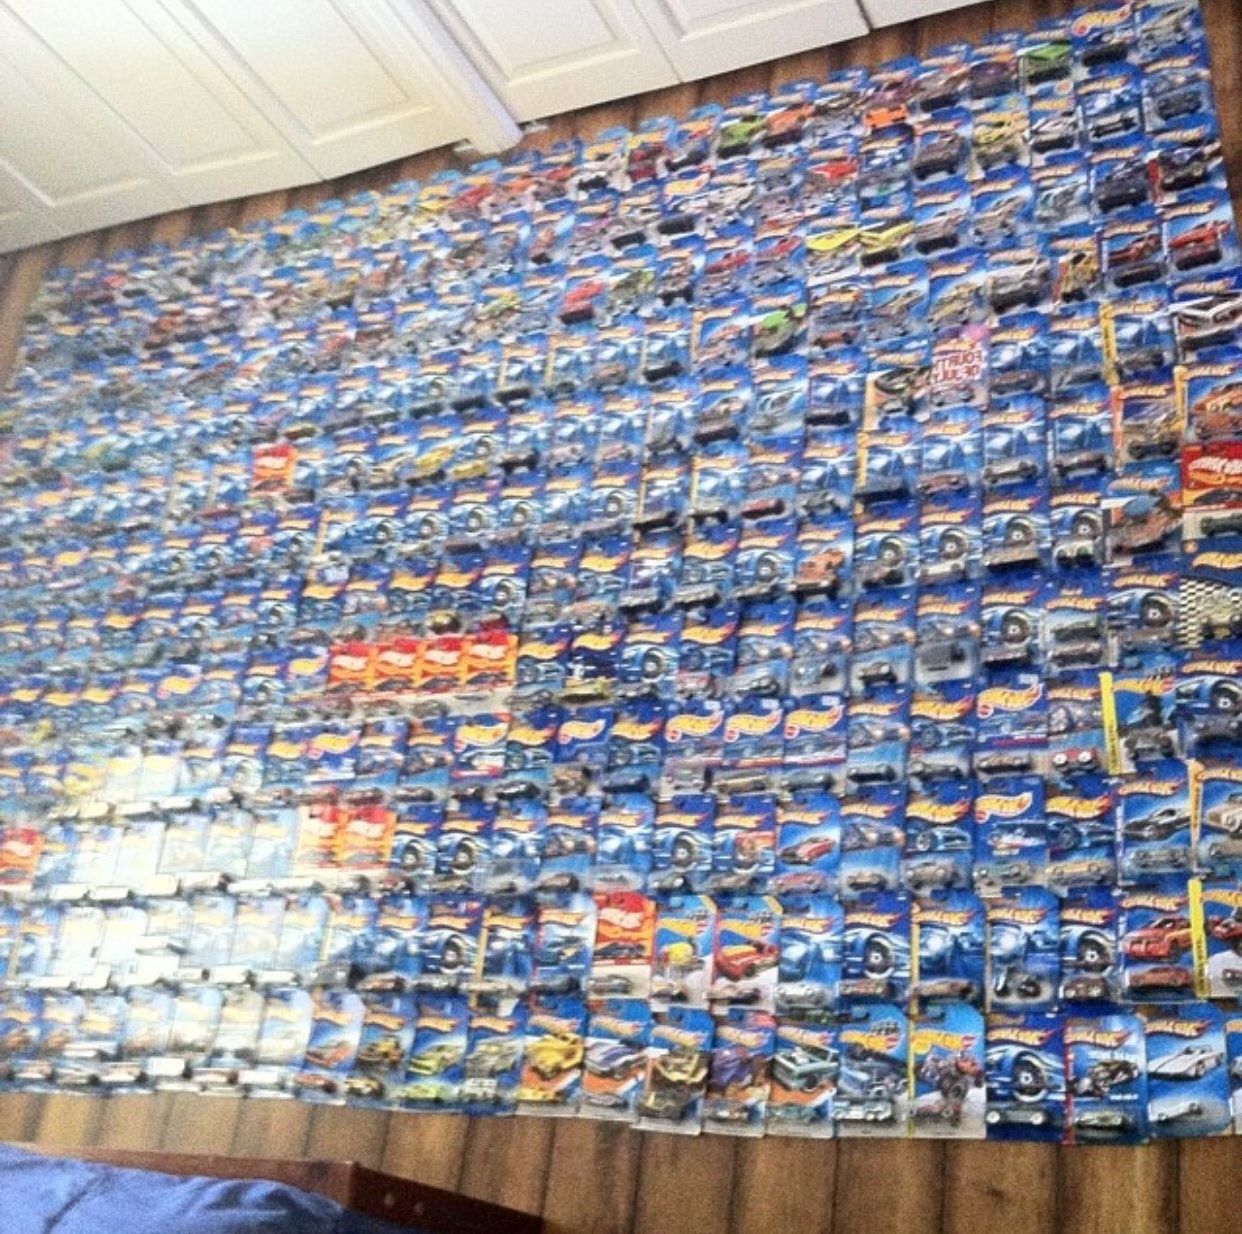 [%my Diecast Collection]my November 2016 Collection Wrap Up Inside Widely Used Hot Wheels Wall Art|hot Wheels Wall Art Pertaining To Widely Used My Diecast Collection]my November 2016 Collection Wrap Up|well Liked Hot Wheels Wall Art Inside My Diecast Collection]my November 2016 Collection Wrap Up|most Current My Diecast Collection]my November 2016 Collection Wrap Up For Hot Wheels Wall Art%] (View 9 of 15)